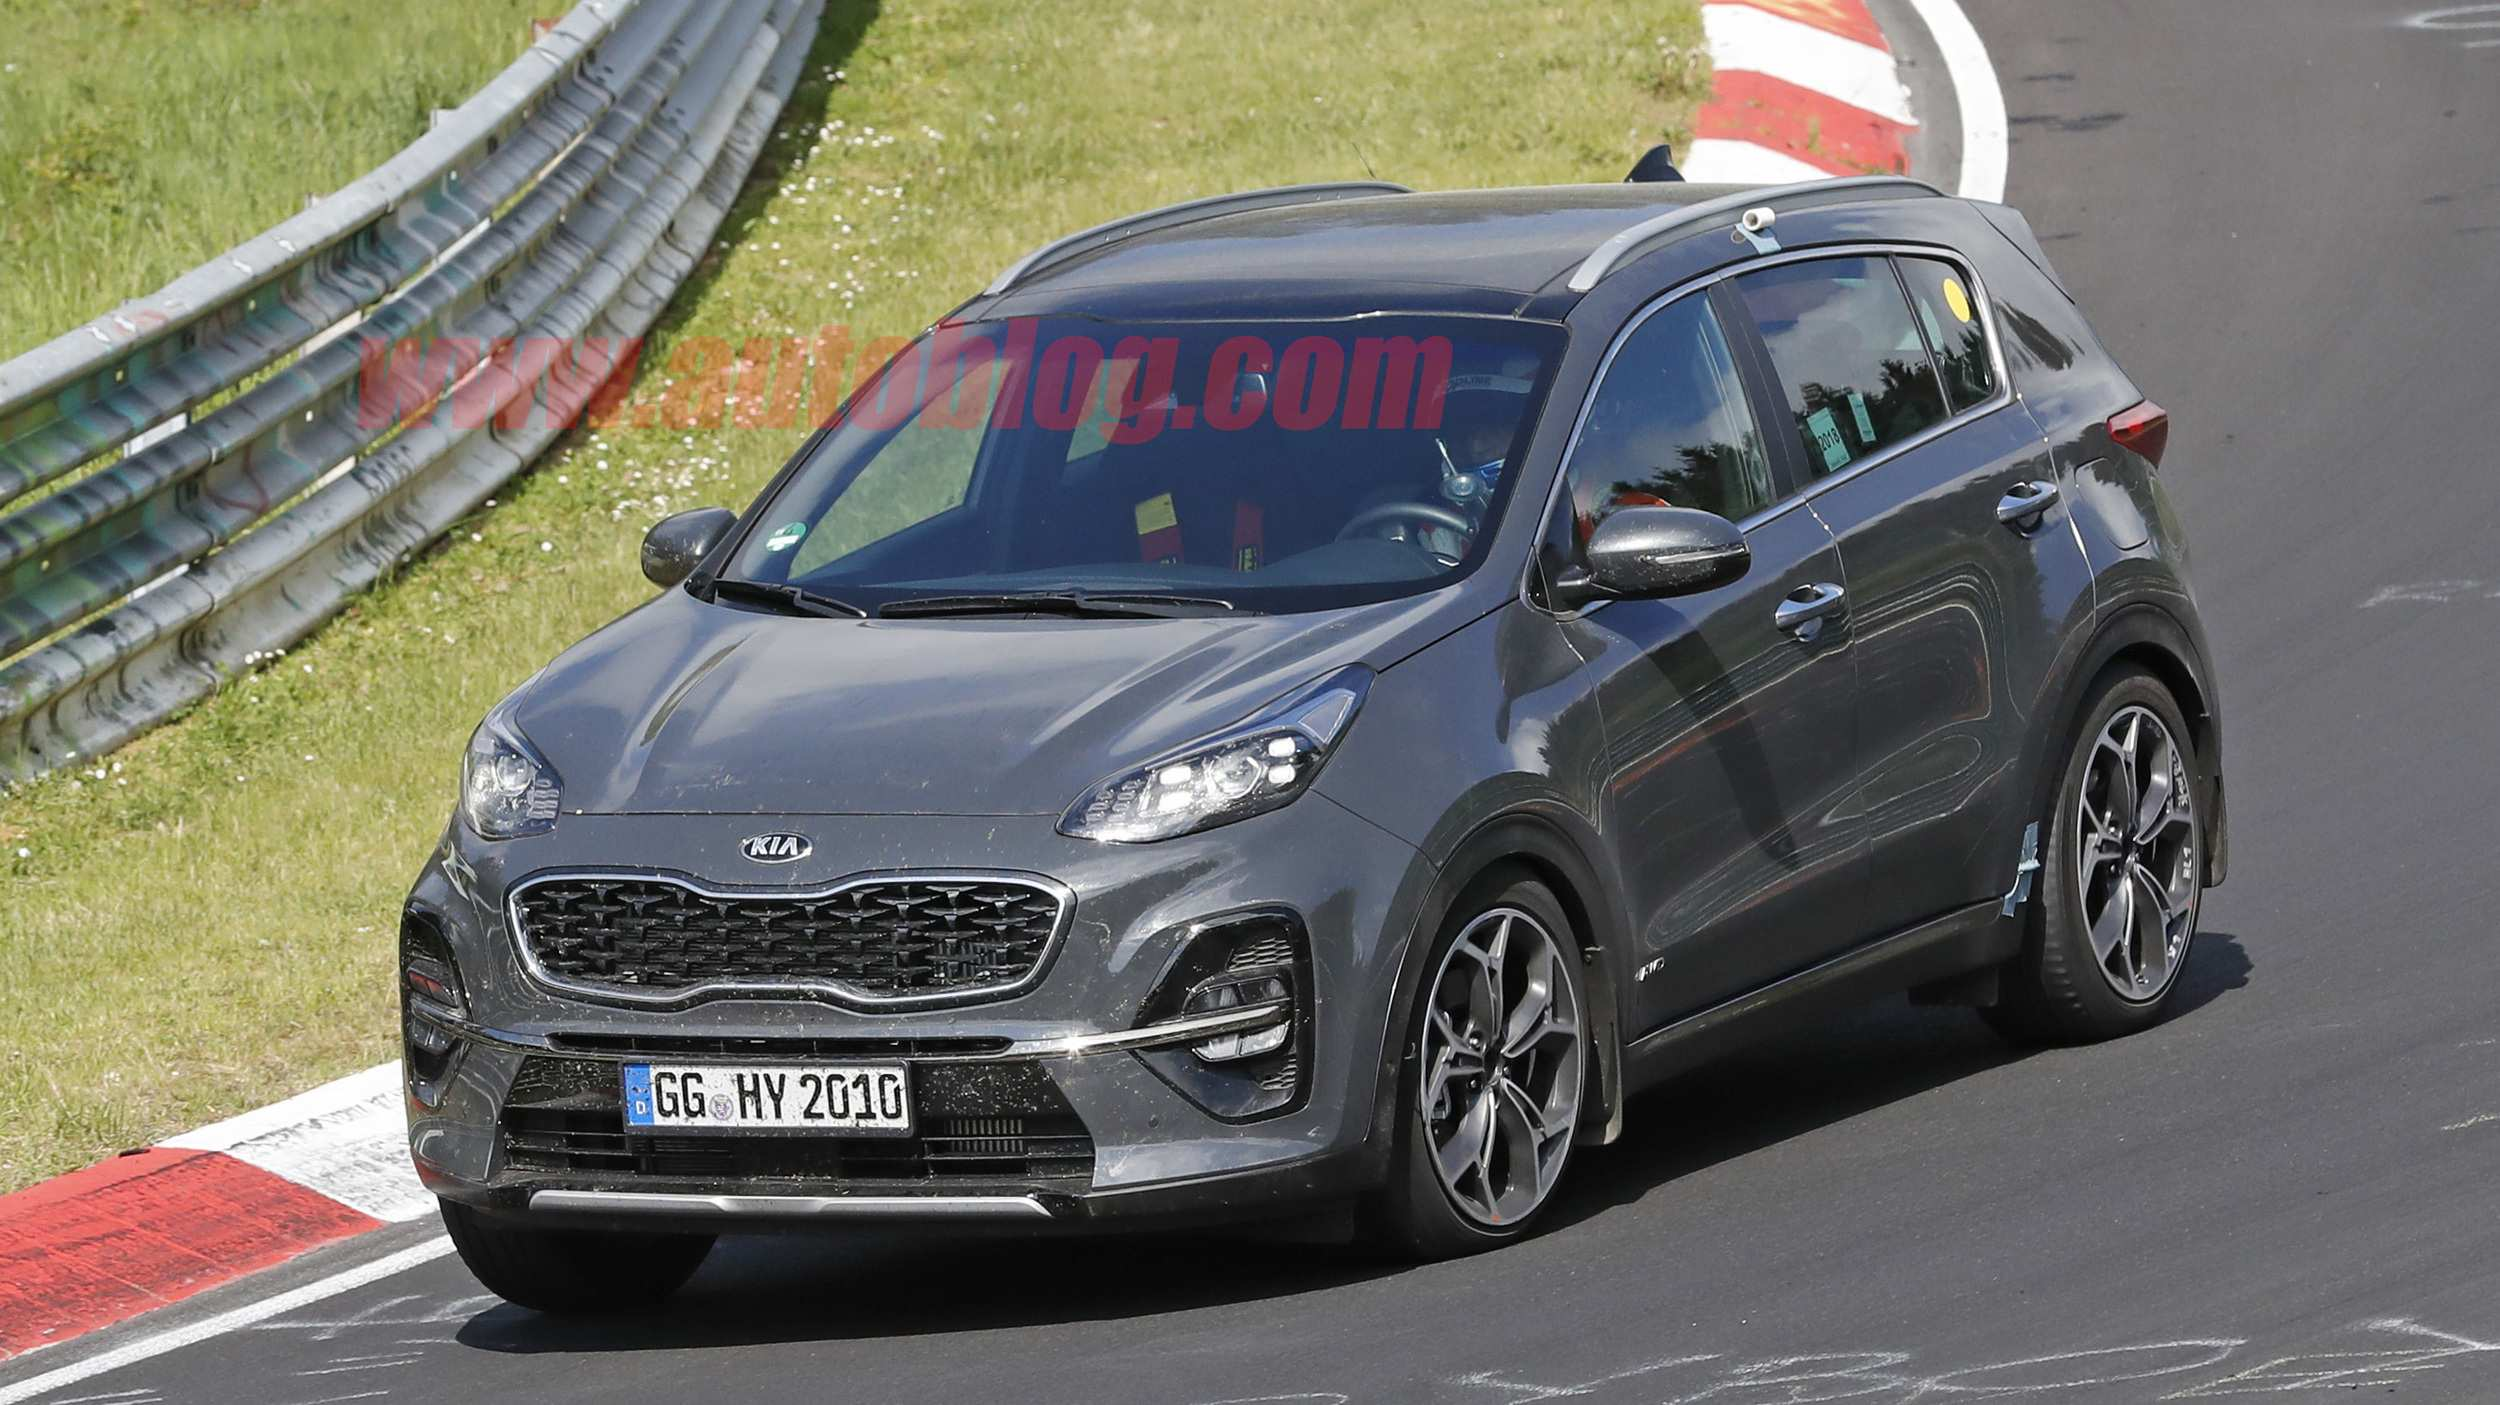 45 New When Does The 2020 Kia Sportage Come Out Pricing with When Does The 2020 Kia Sportage Come Out